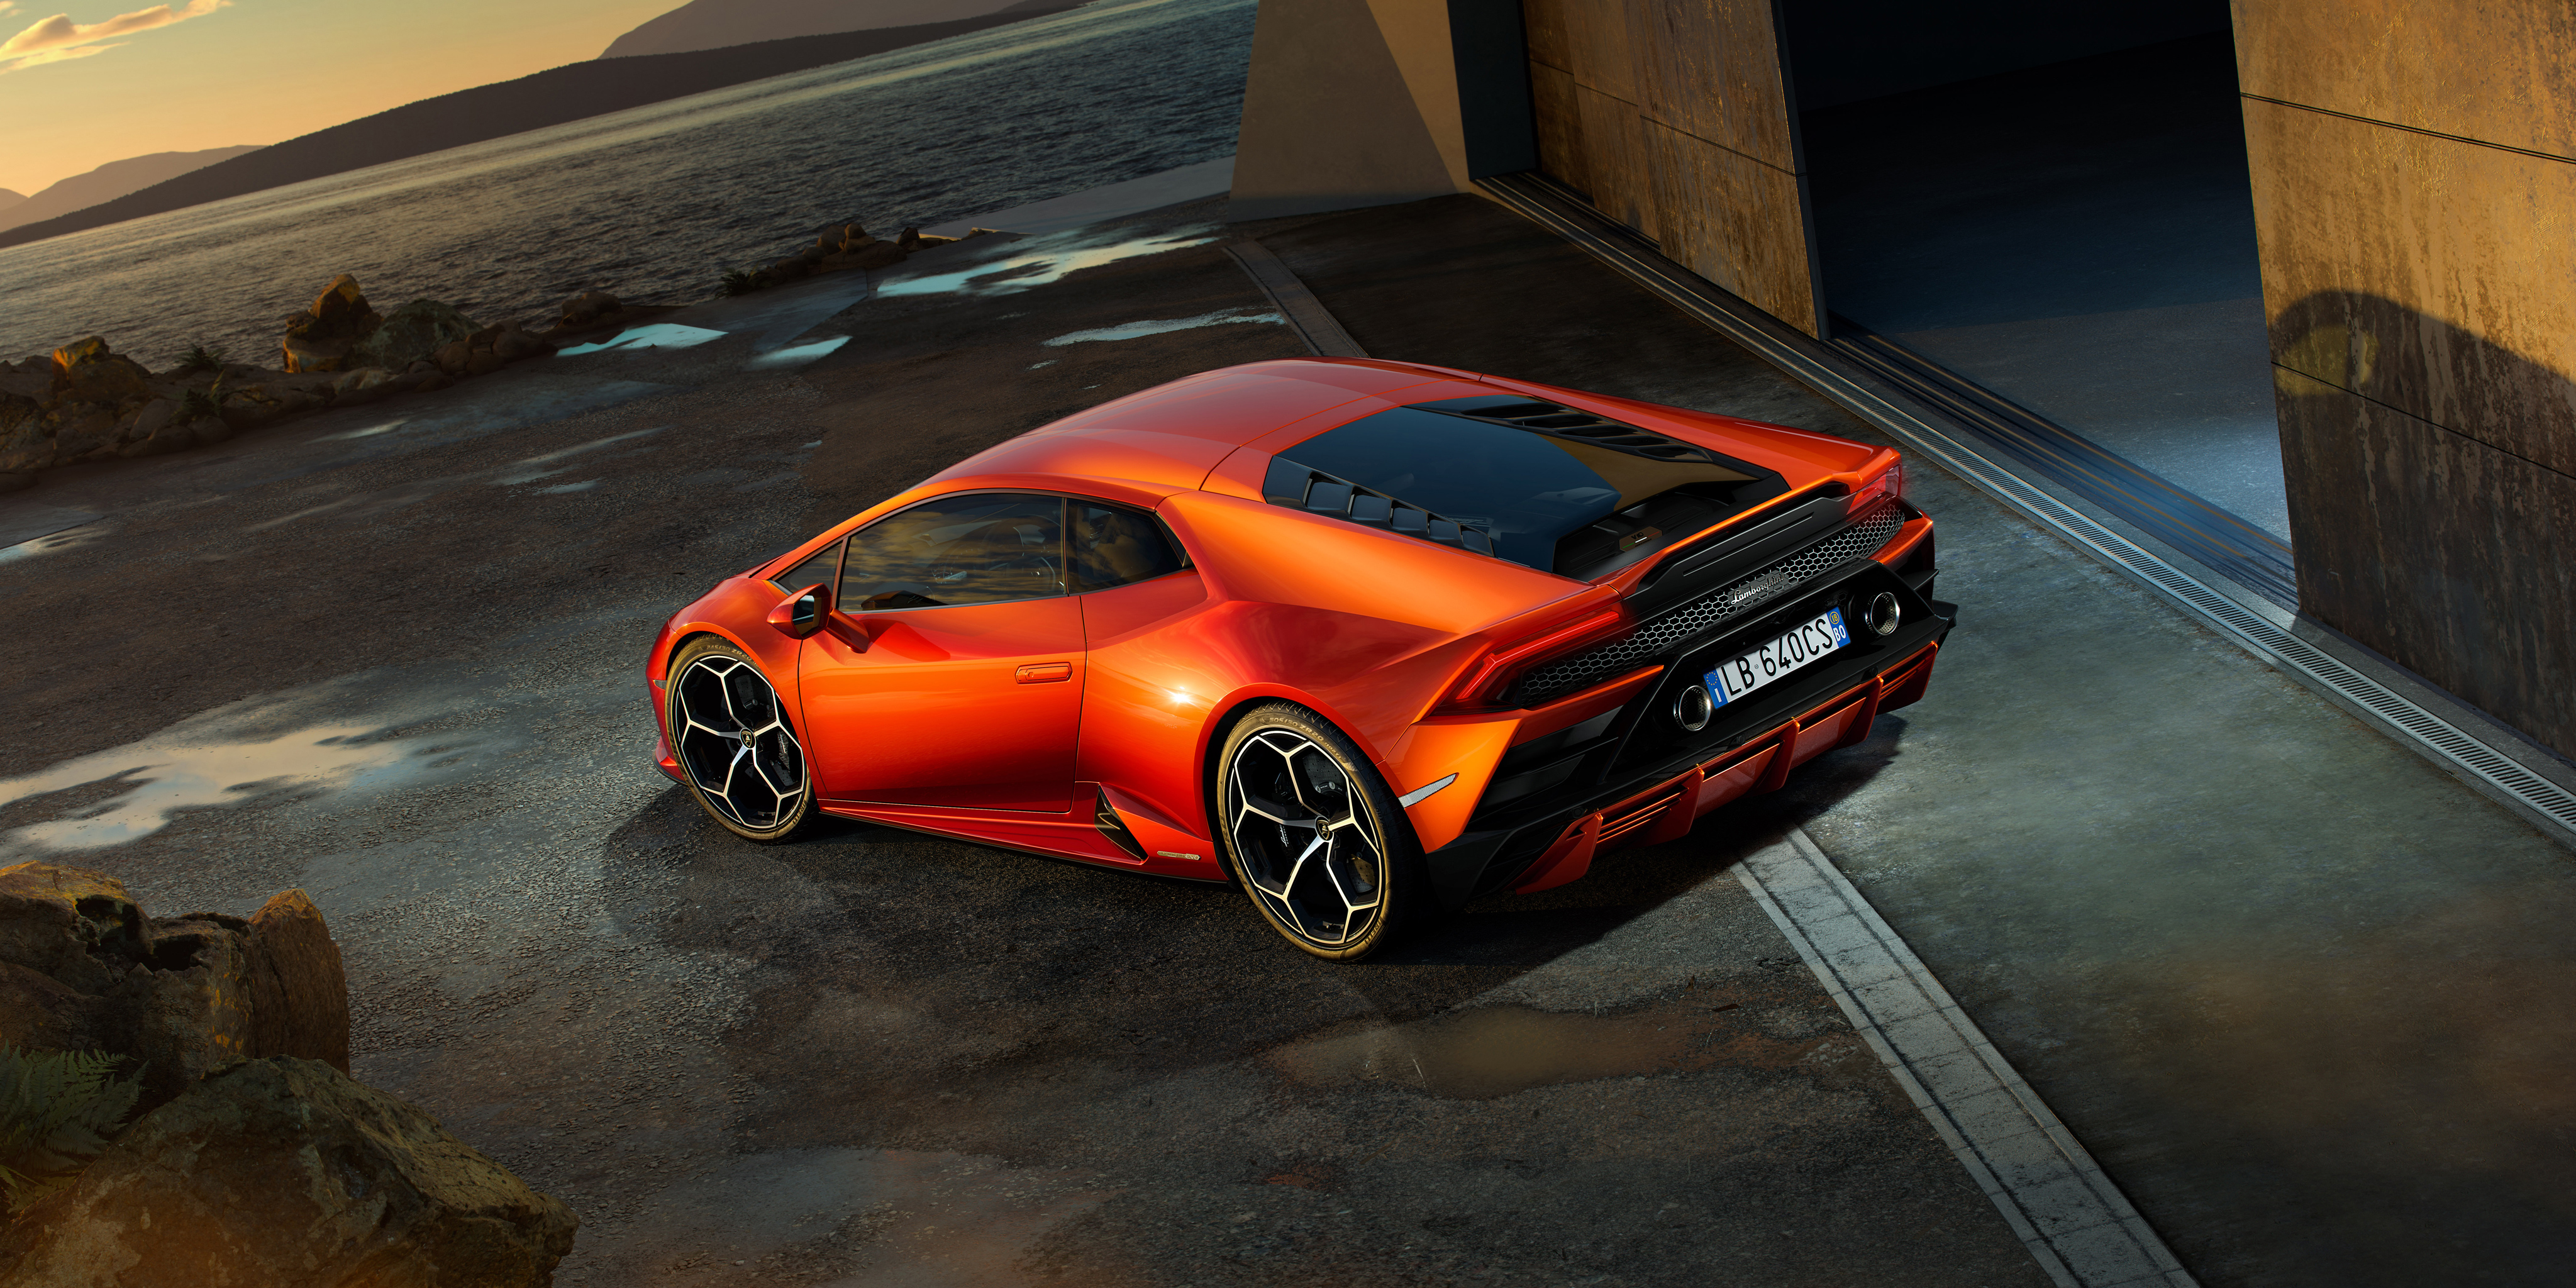 lamborghini huracan evo 2019 rear 4k hd cars 4k wallpapers images backgrounds photos and. Black Bedroom Furniture Sets. Home Design Ideas